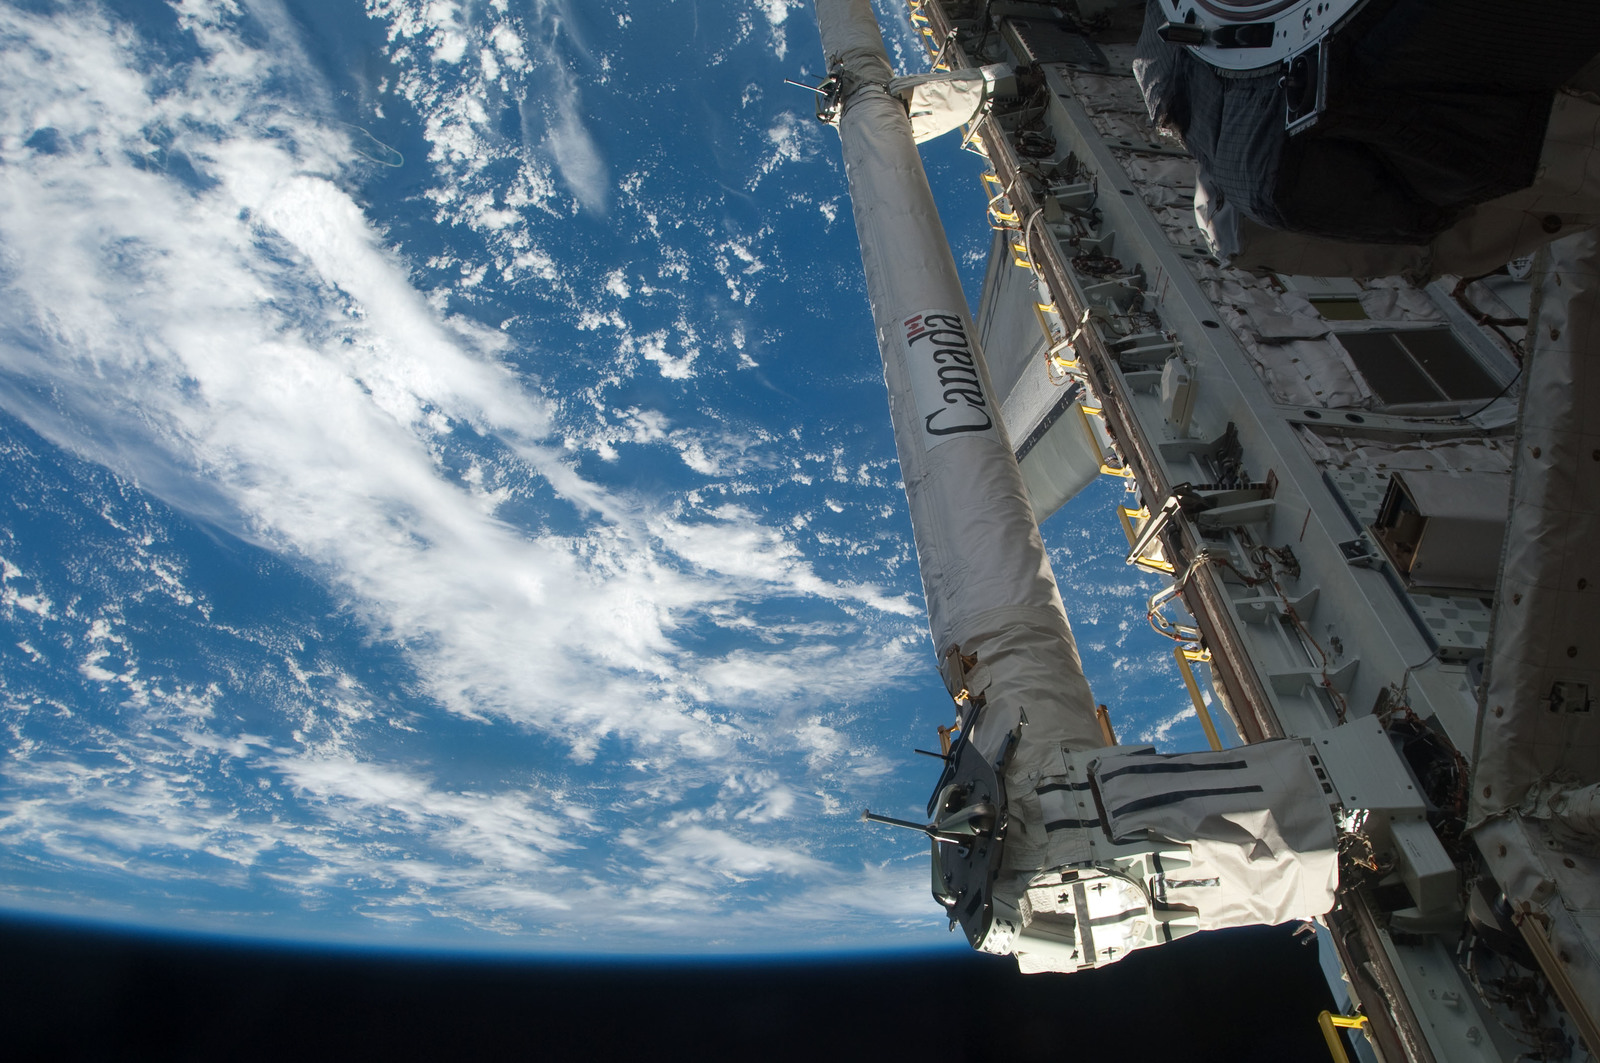 S126E026976 - STS-126 - Payload Bay of Endeavour